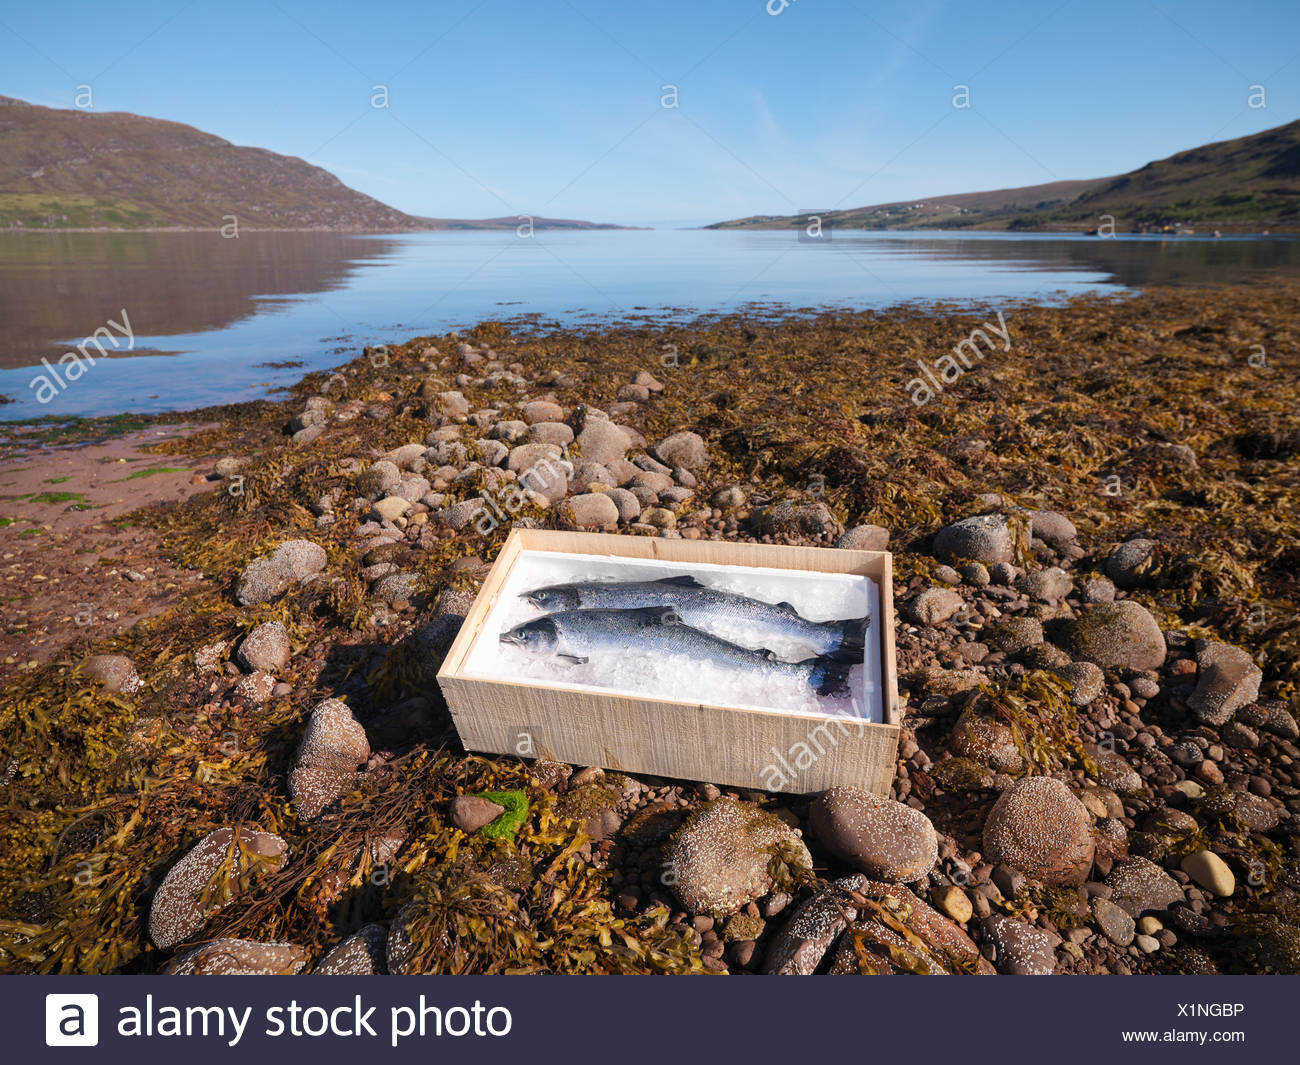 Fish on bed of ice in box by lake - Stock Image